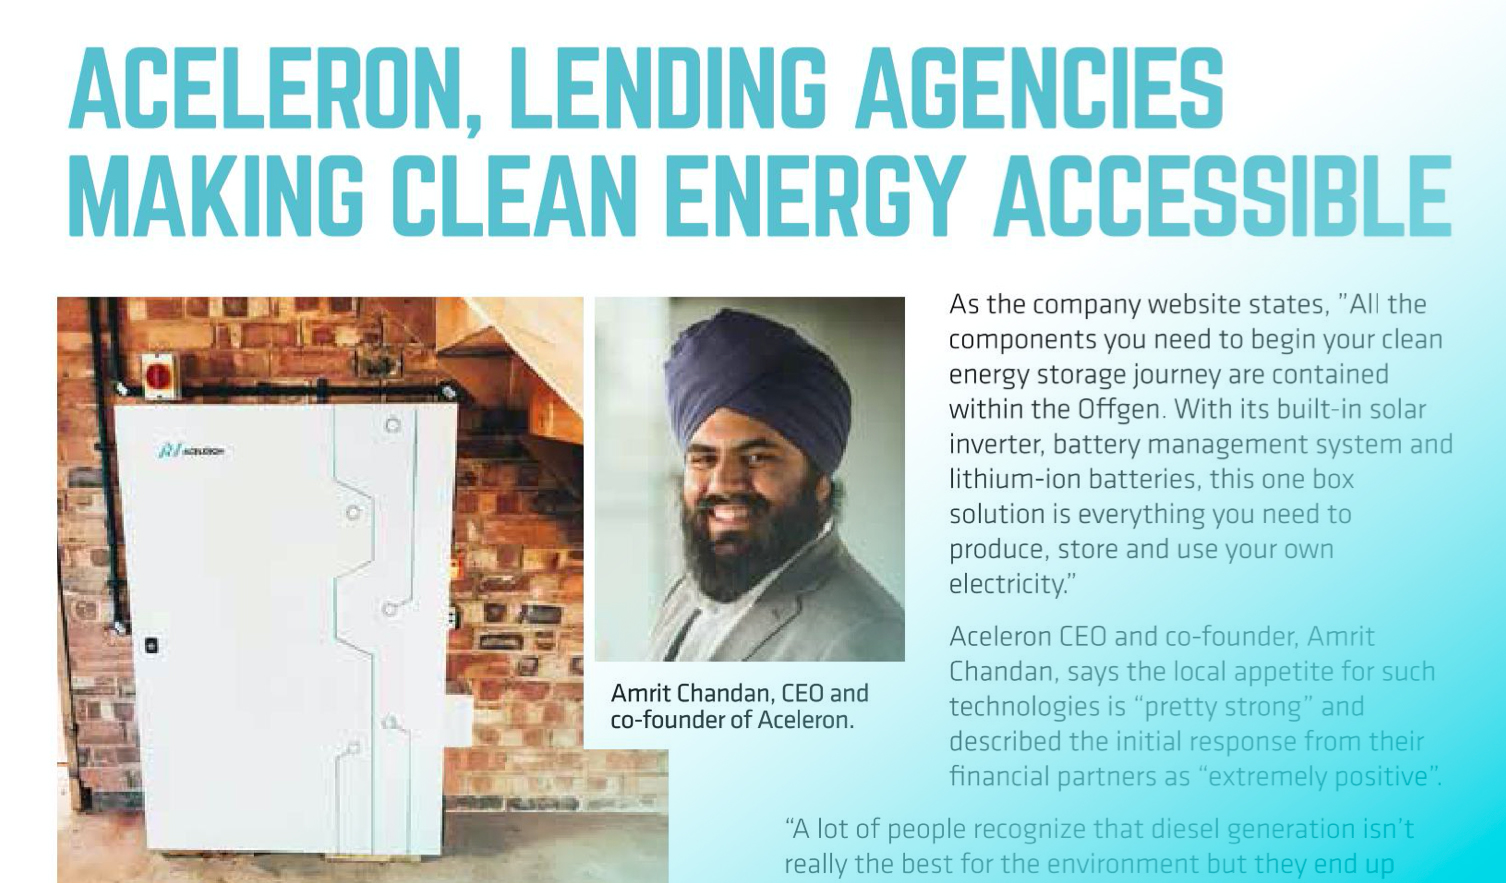 Aceleron making clean energy accessible in the Caribbean